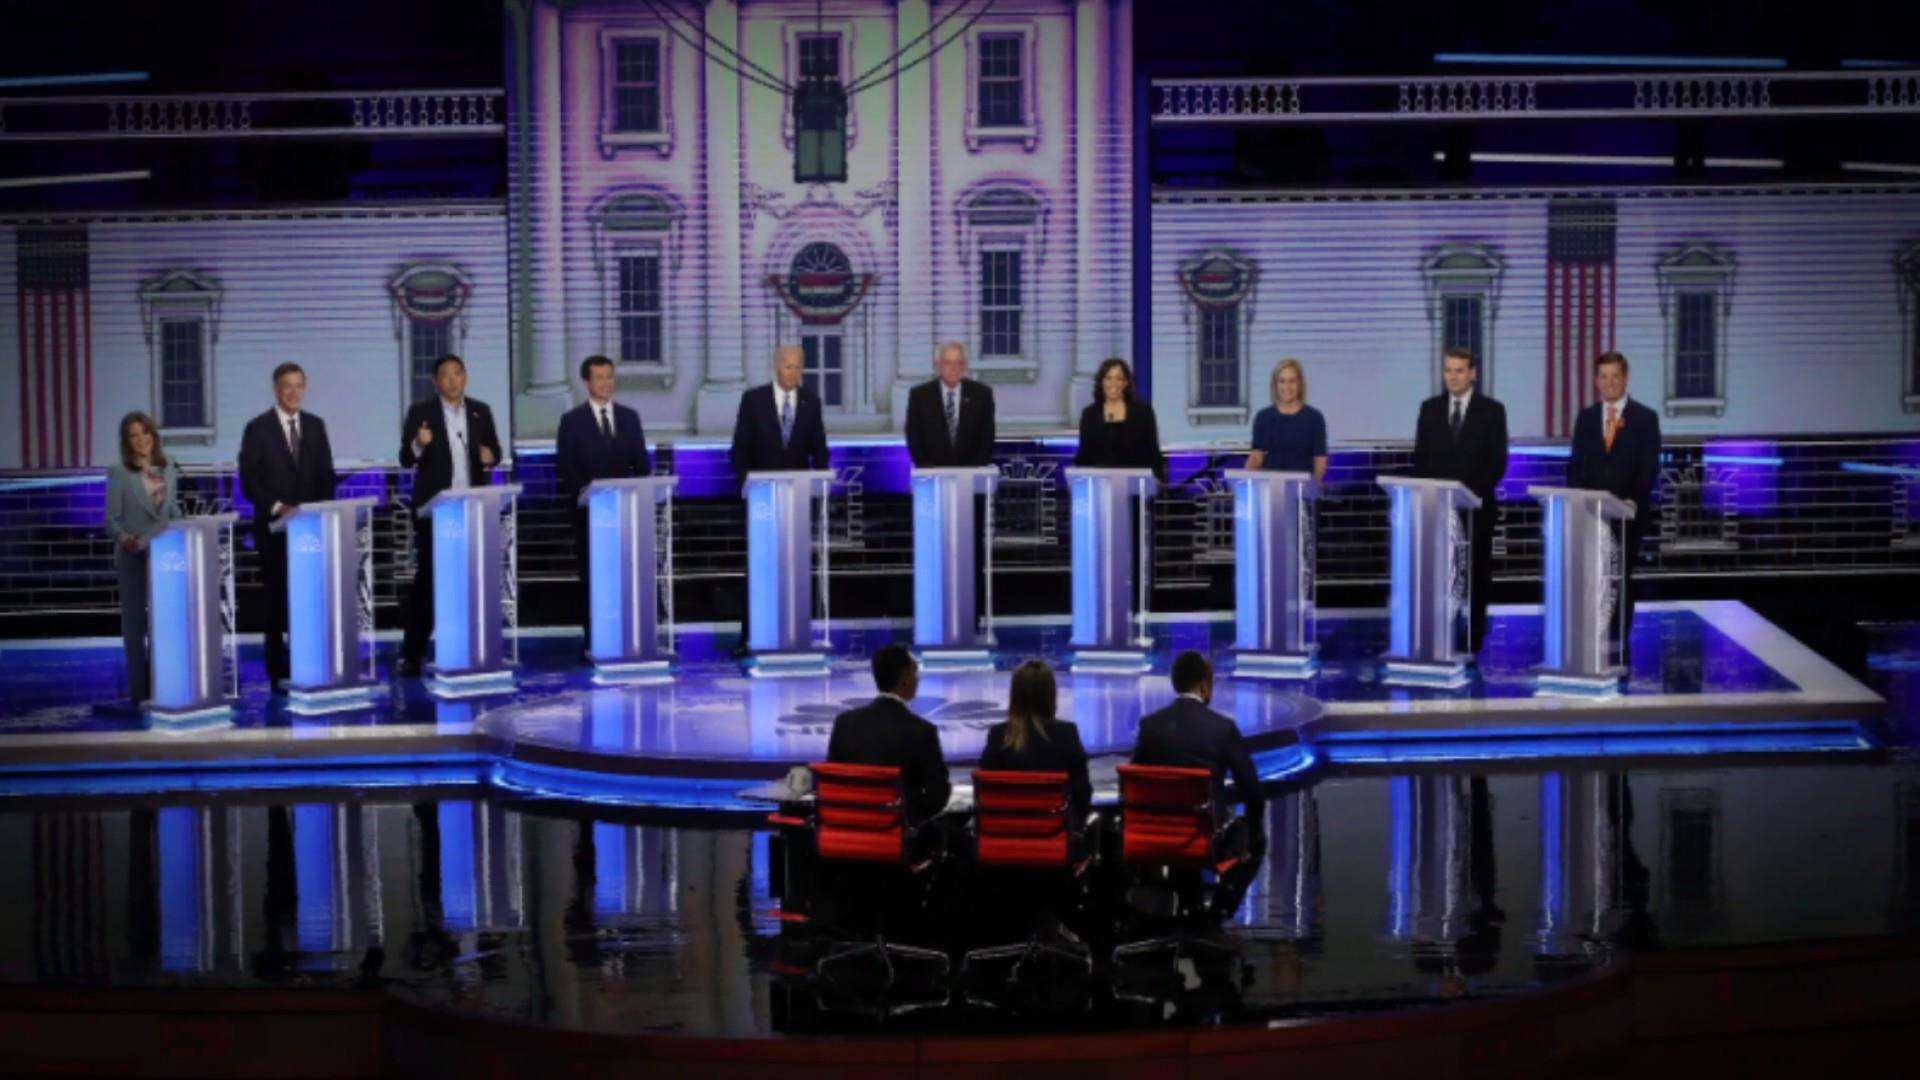 Debate night two: Dems blast Trump as 'worst president ever' and more